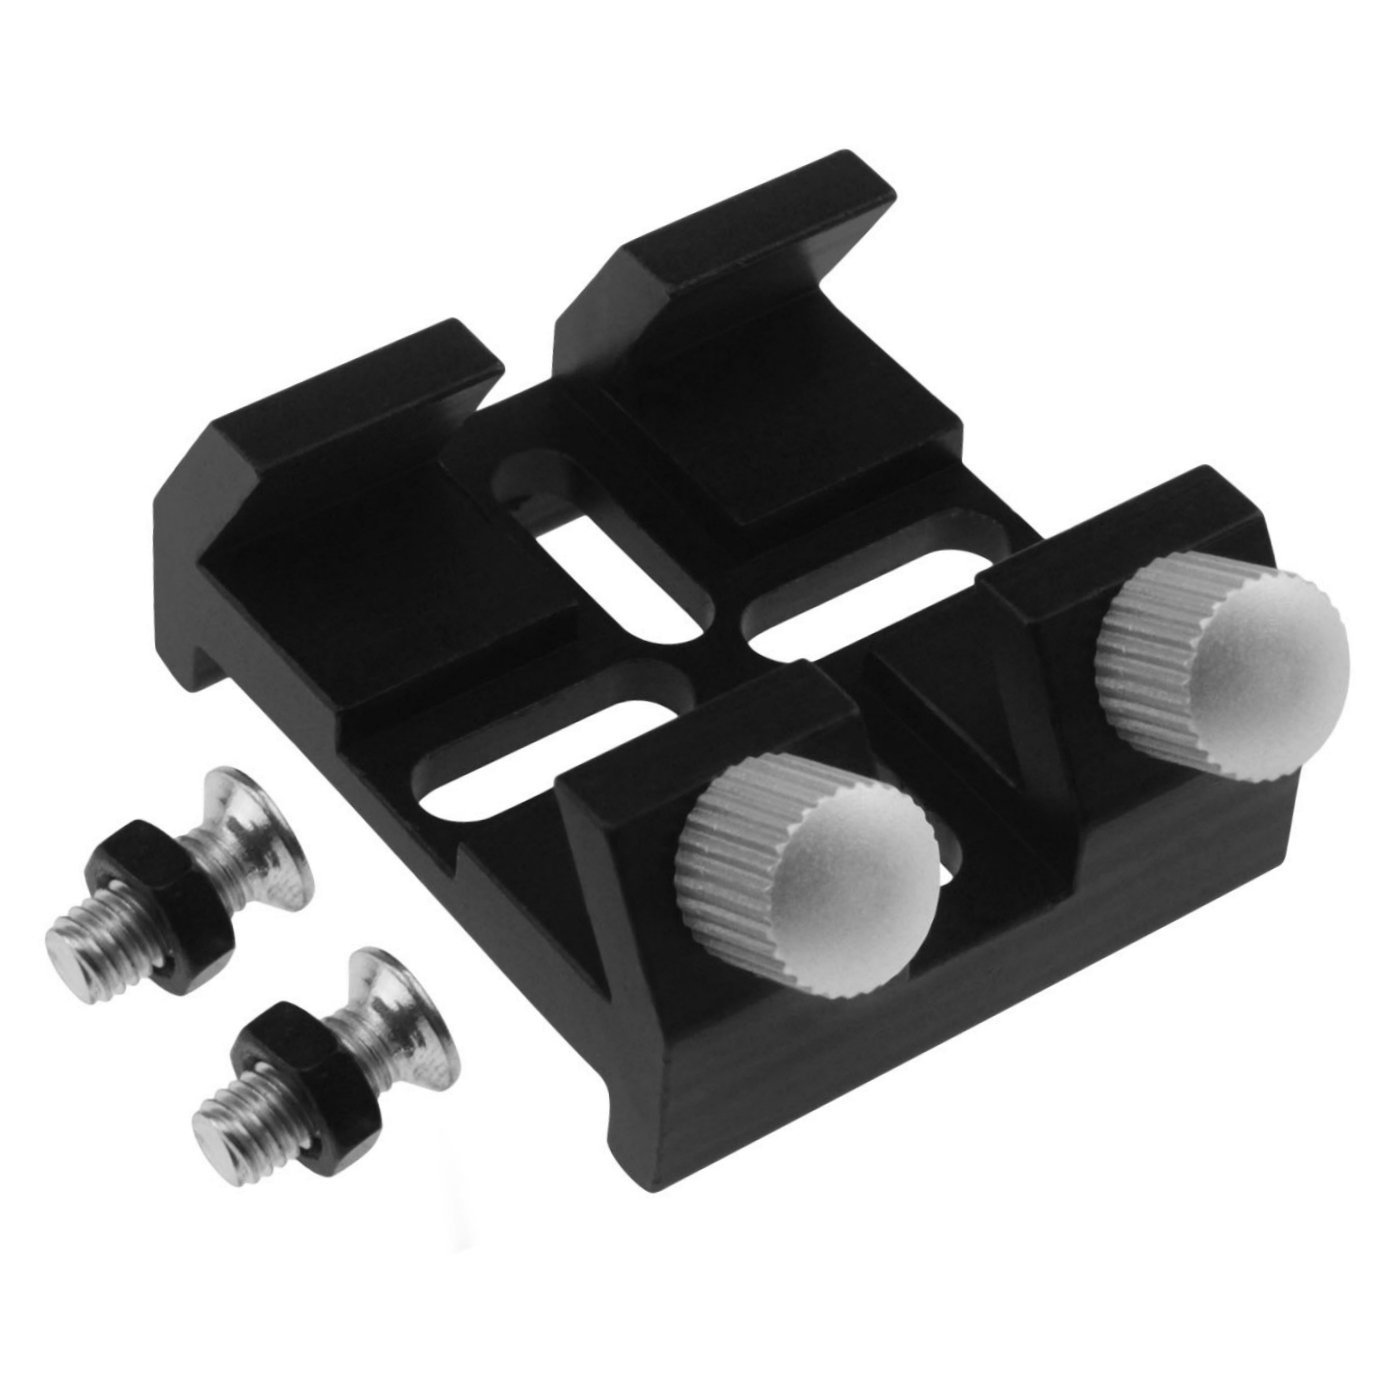 Astromania Universal Dovetail Base for Finder Scope - Ideal for Installation of Finder Scope, Green Laser Pointer Bracket